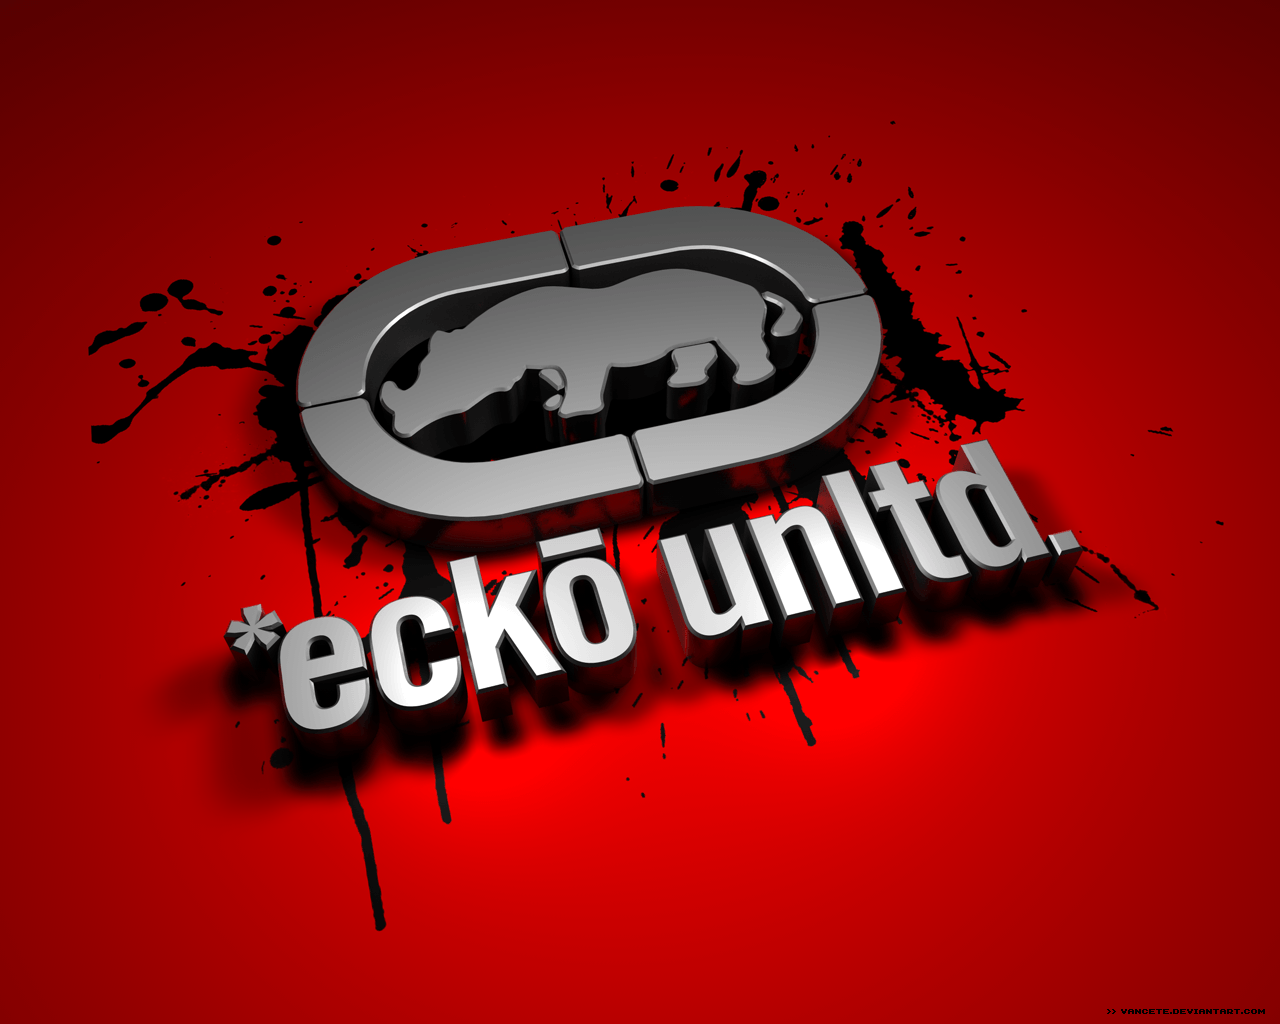 the gallery for gt ecko unltd graffiti wallpaper